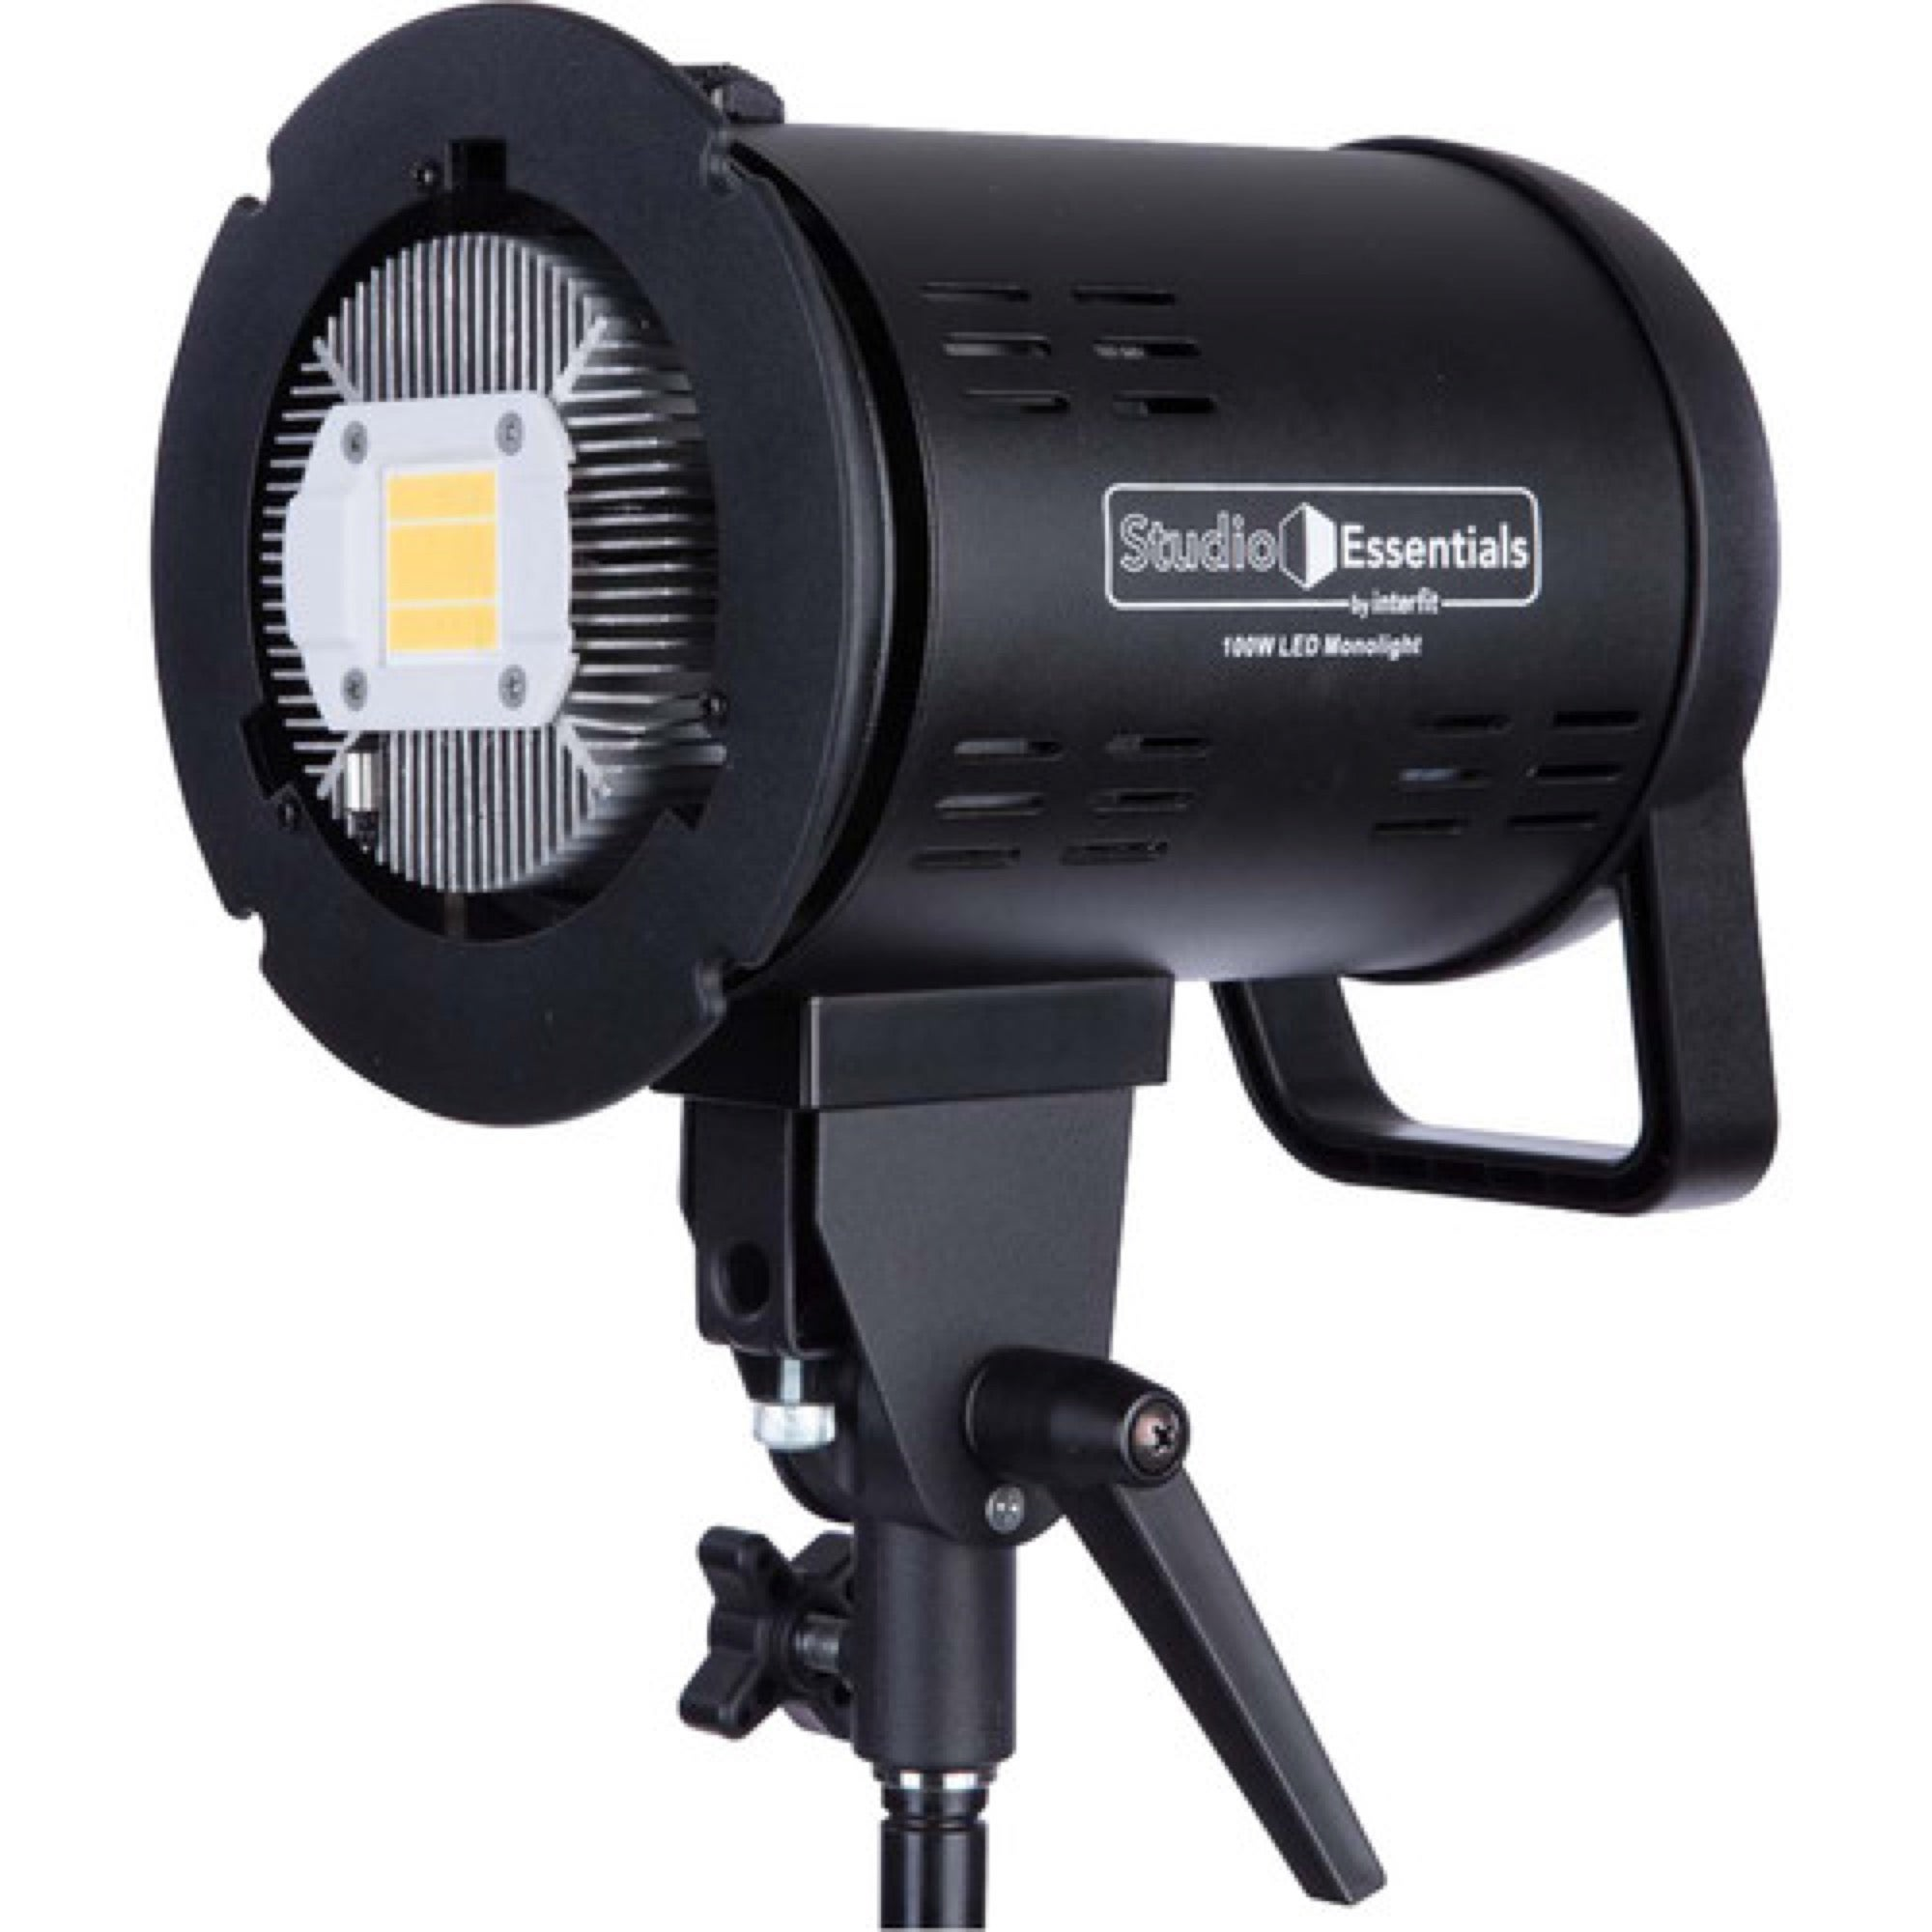 Alpha-Universe-studio_essentials_ledm100d_100w_led_monolight_1519662111_1393519.jpg